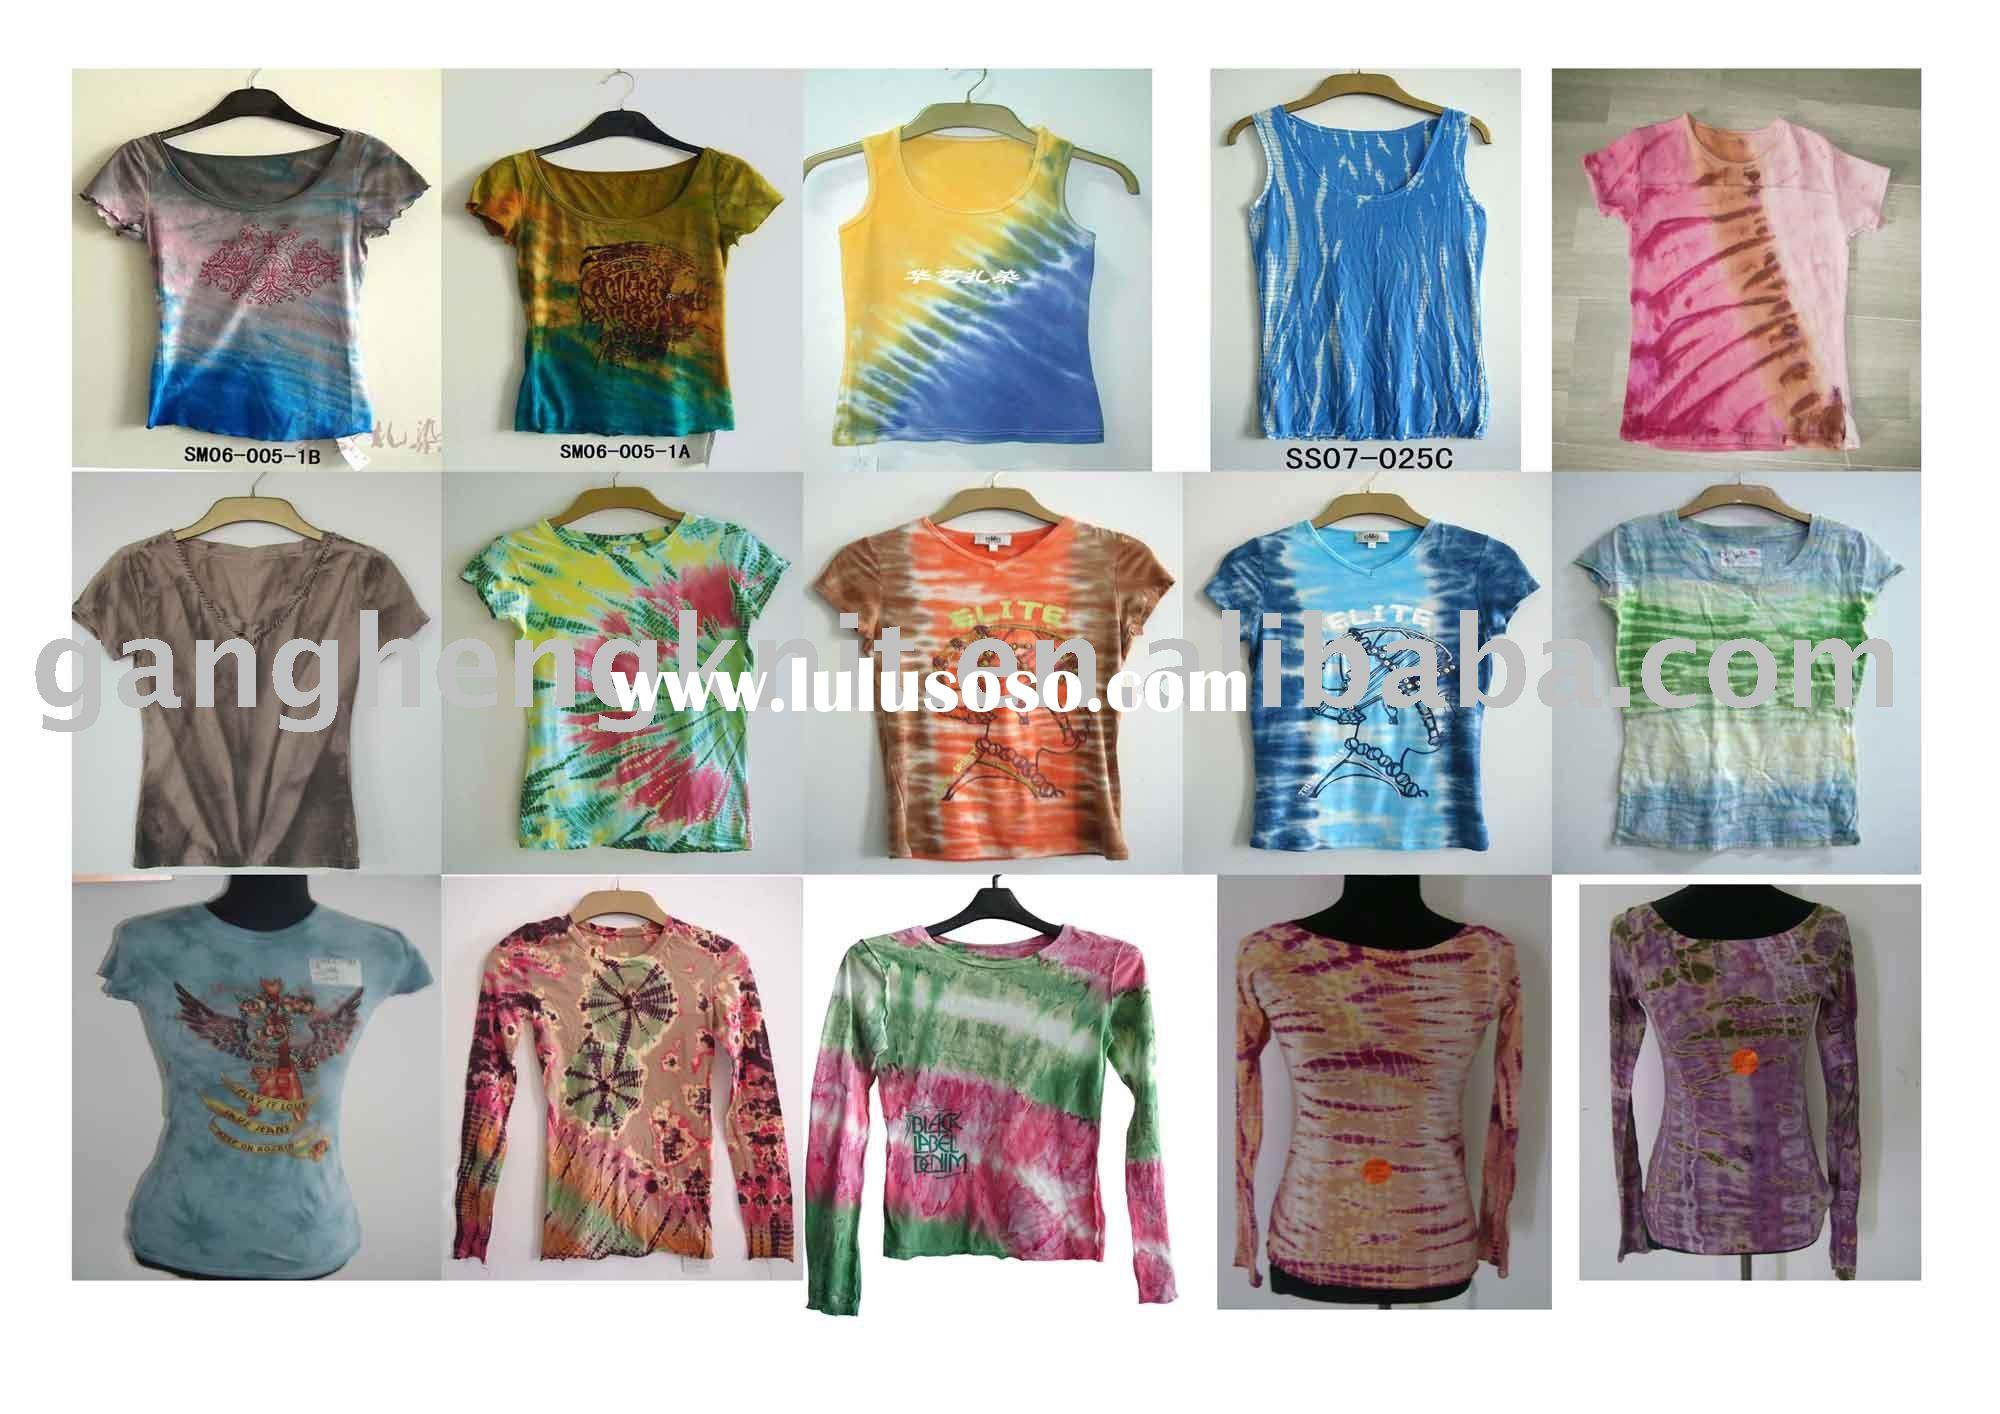 suit for ladies' 100% cotton jersey with tie dyed T-shirt